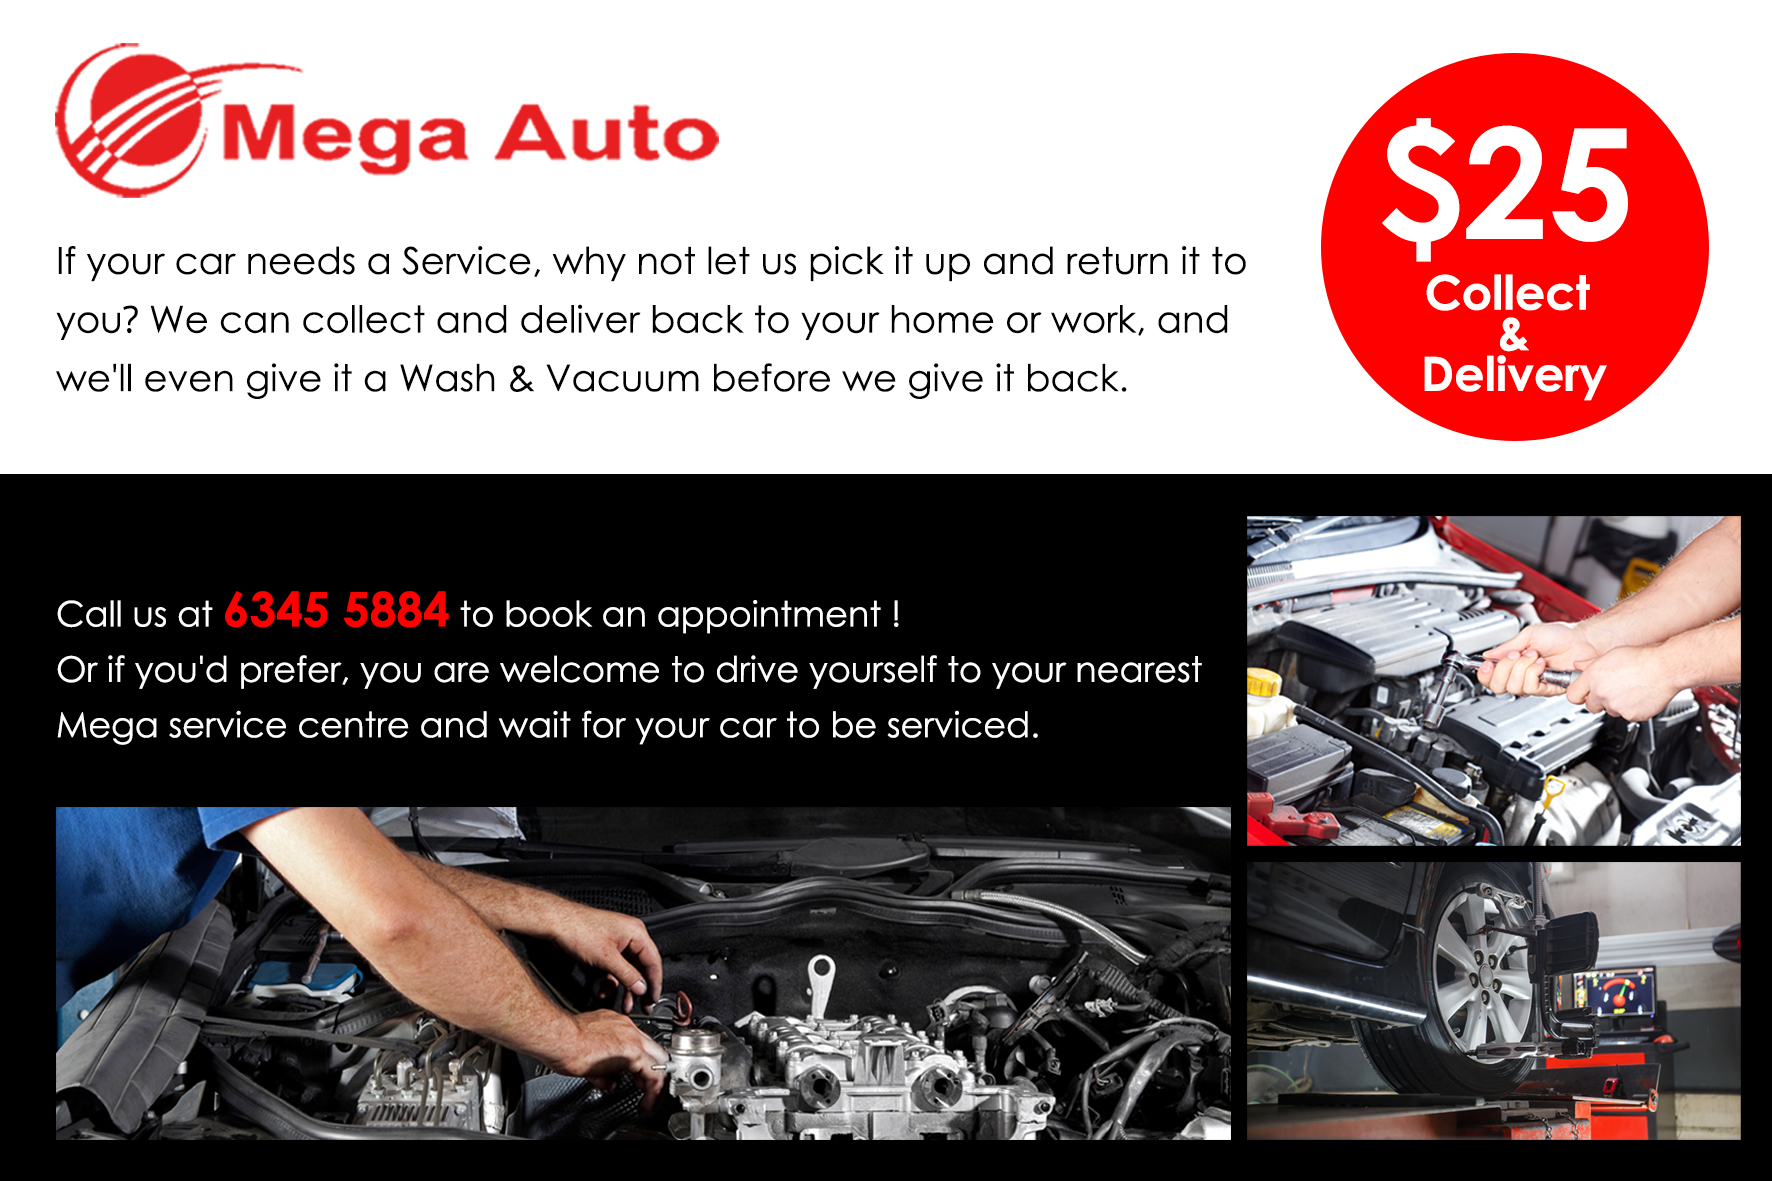 Promotion mega auto pte ltd singapore collect and delivery promo banner solutioingenieria Image collections